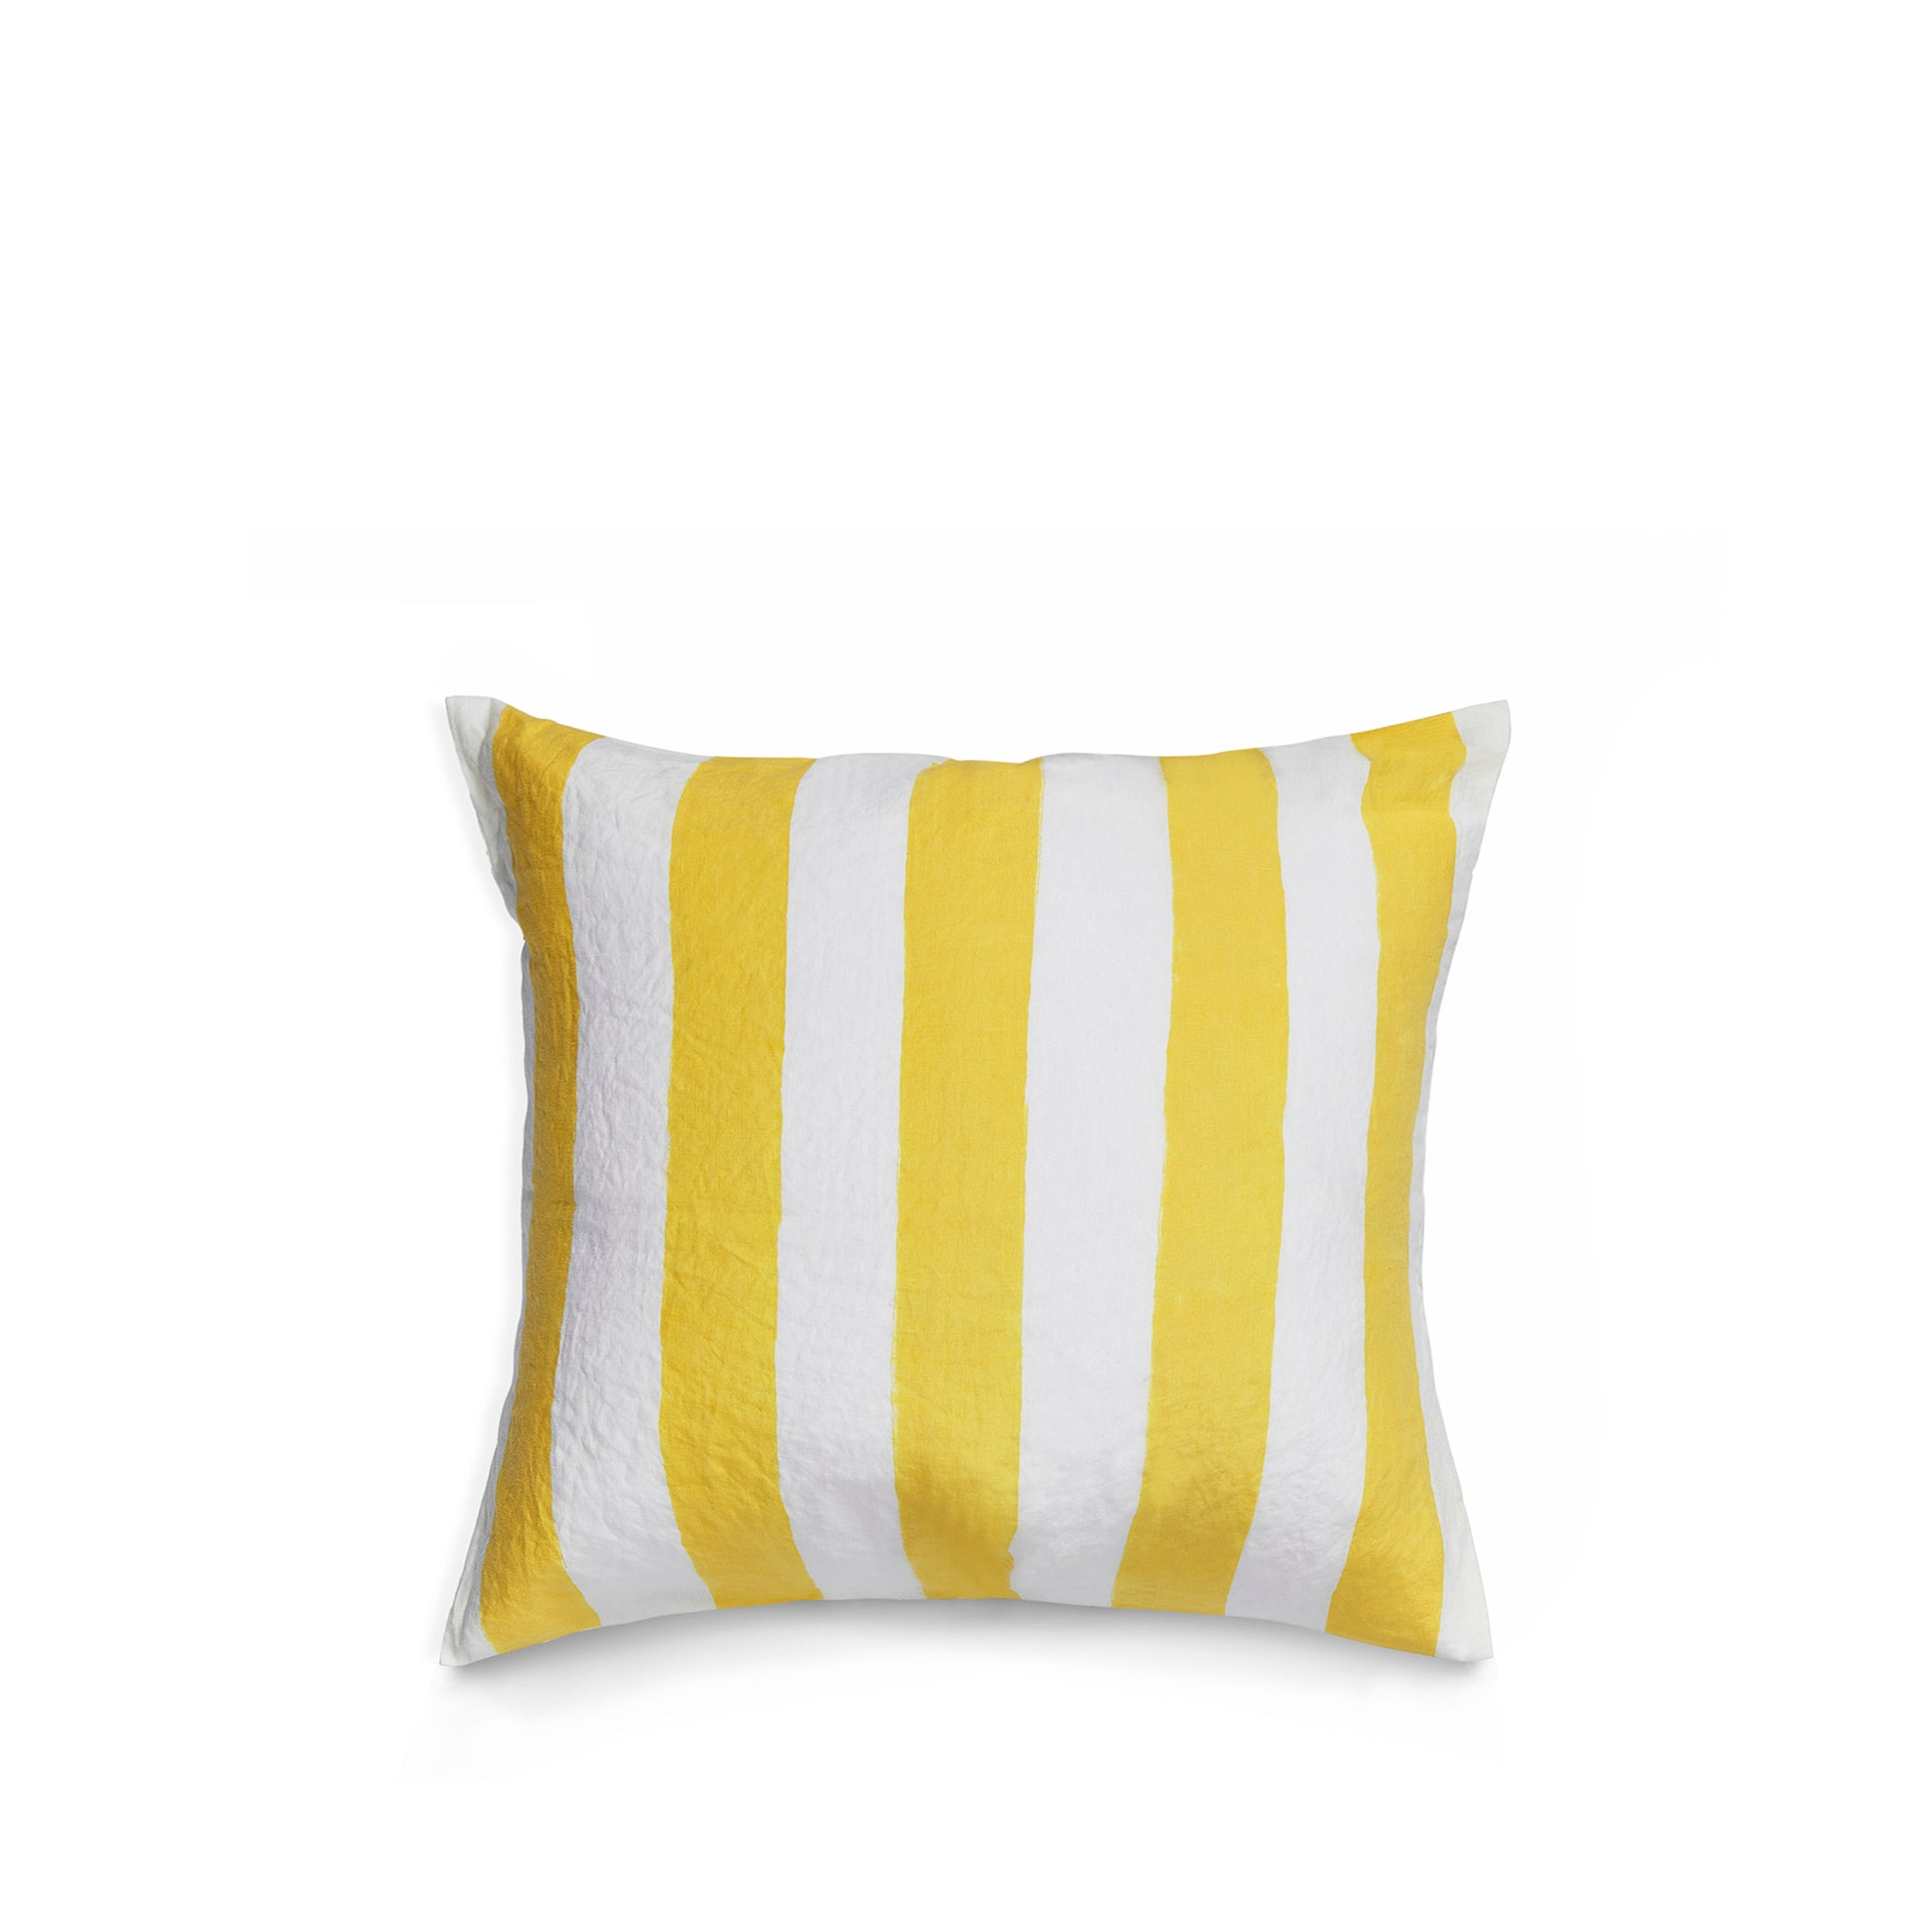 Hand Painted Stripe Linen Cushion in Lemon Yellow + White, 50cm x 50cm